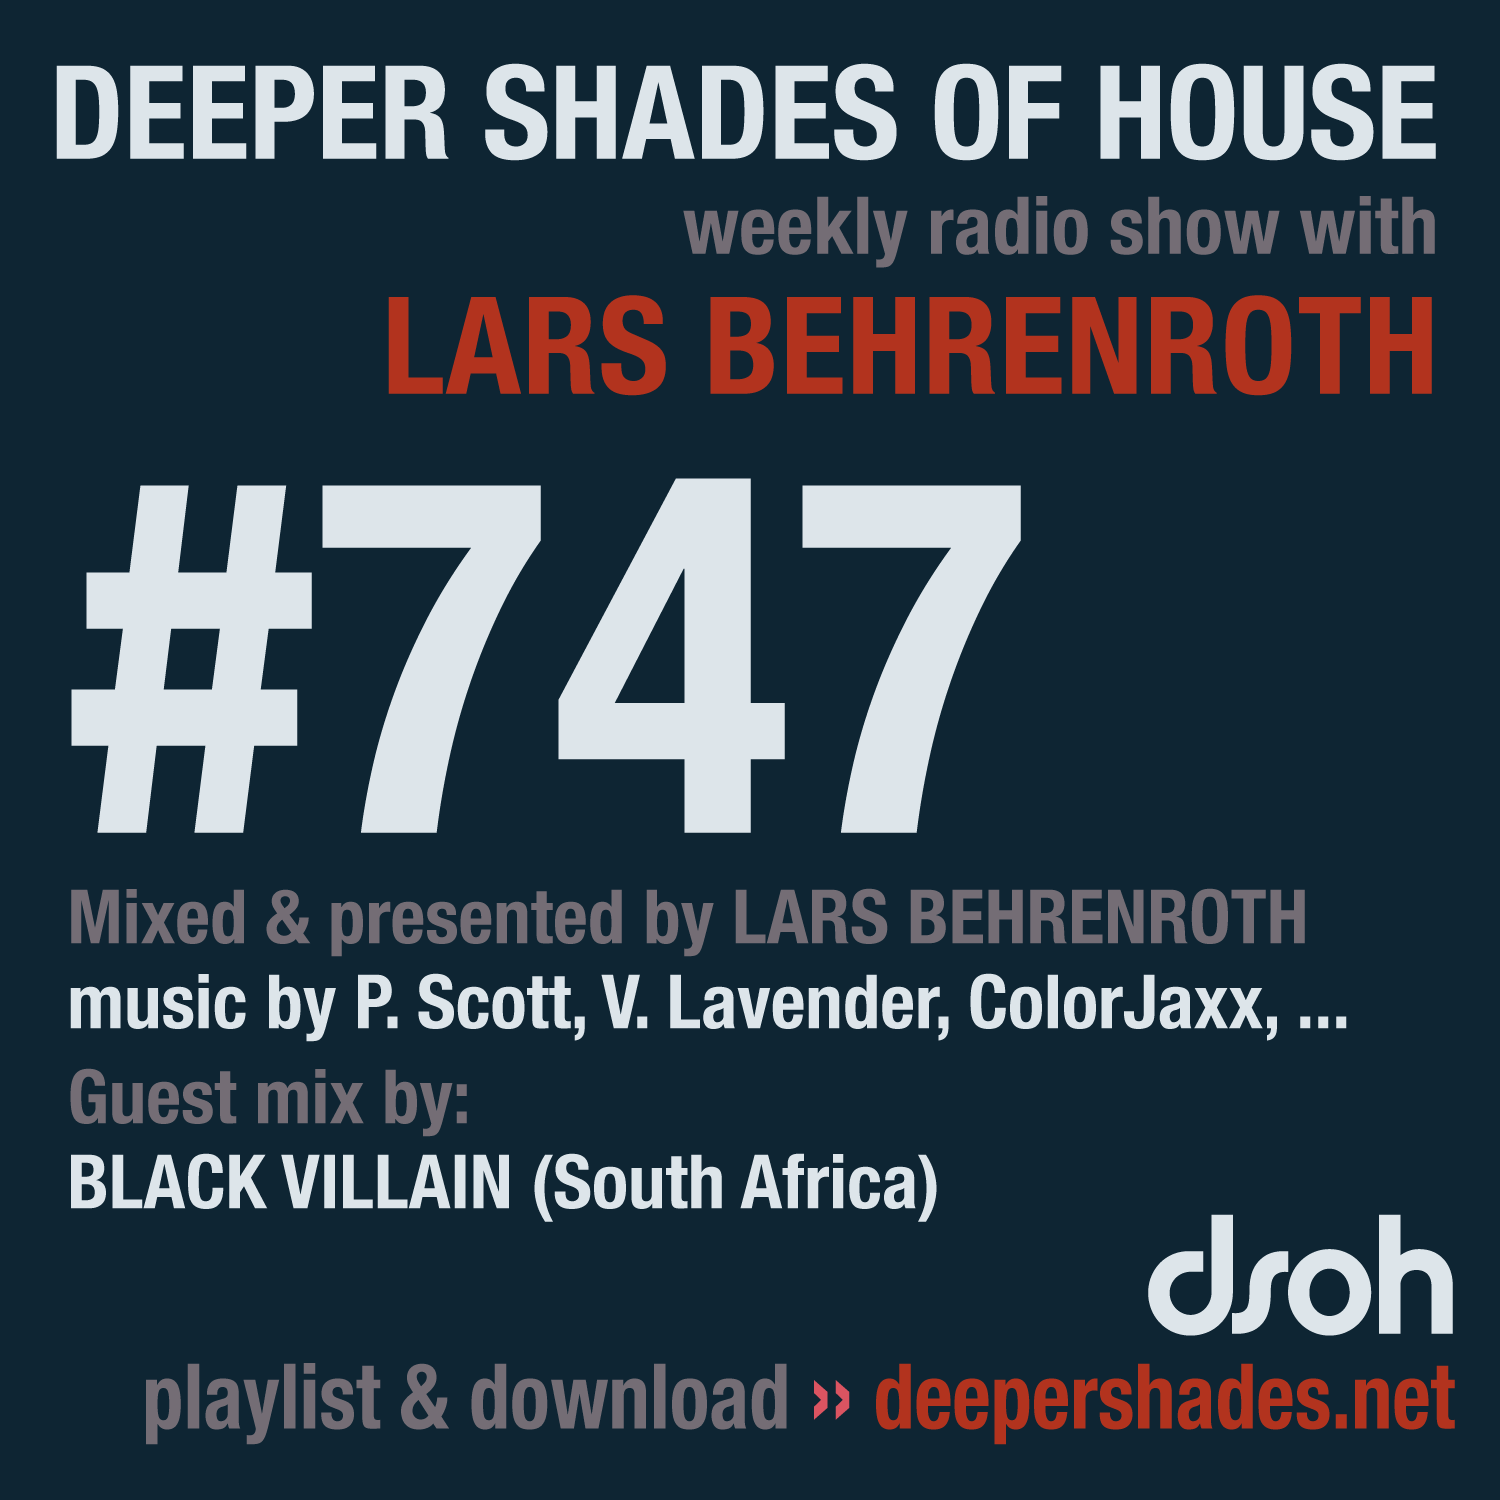 Deeper Shades Of House 747